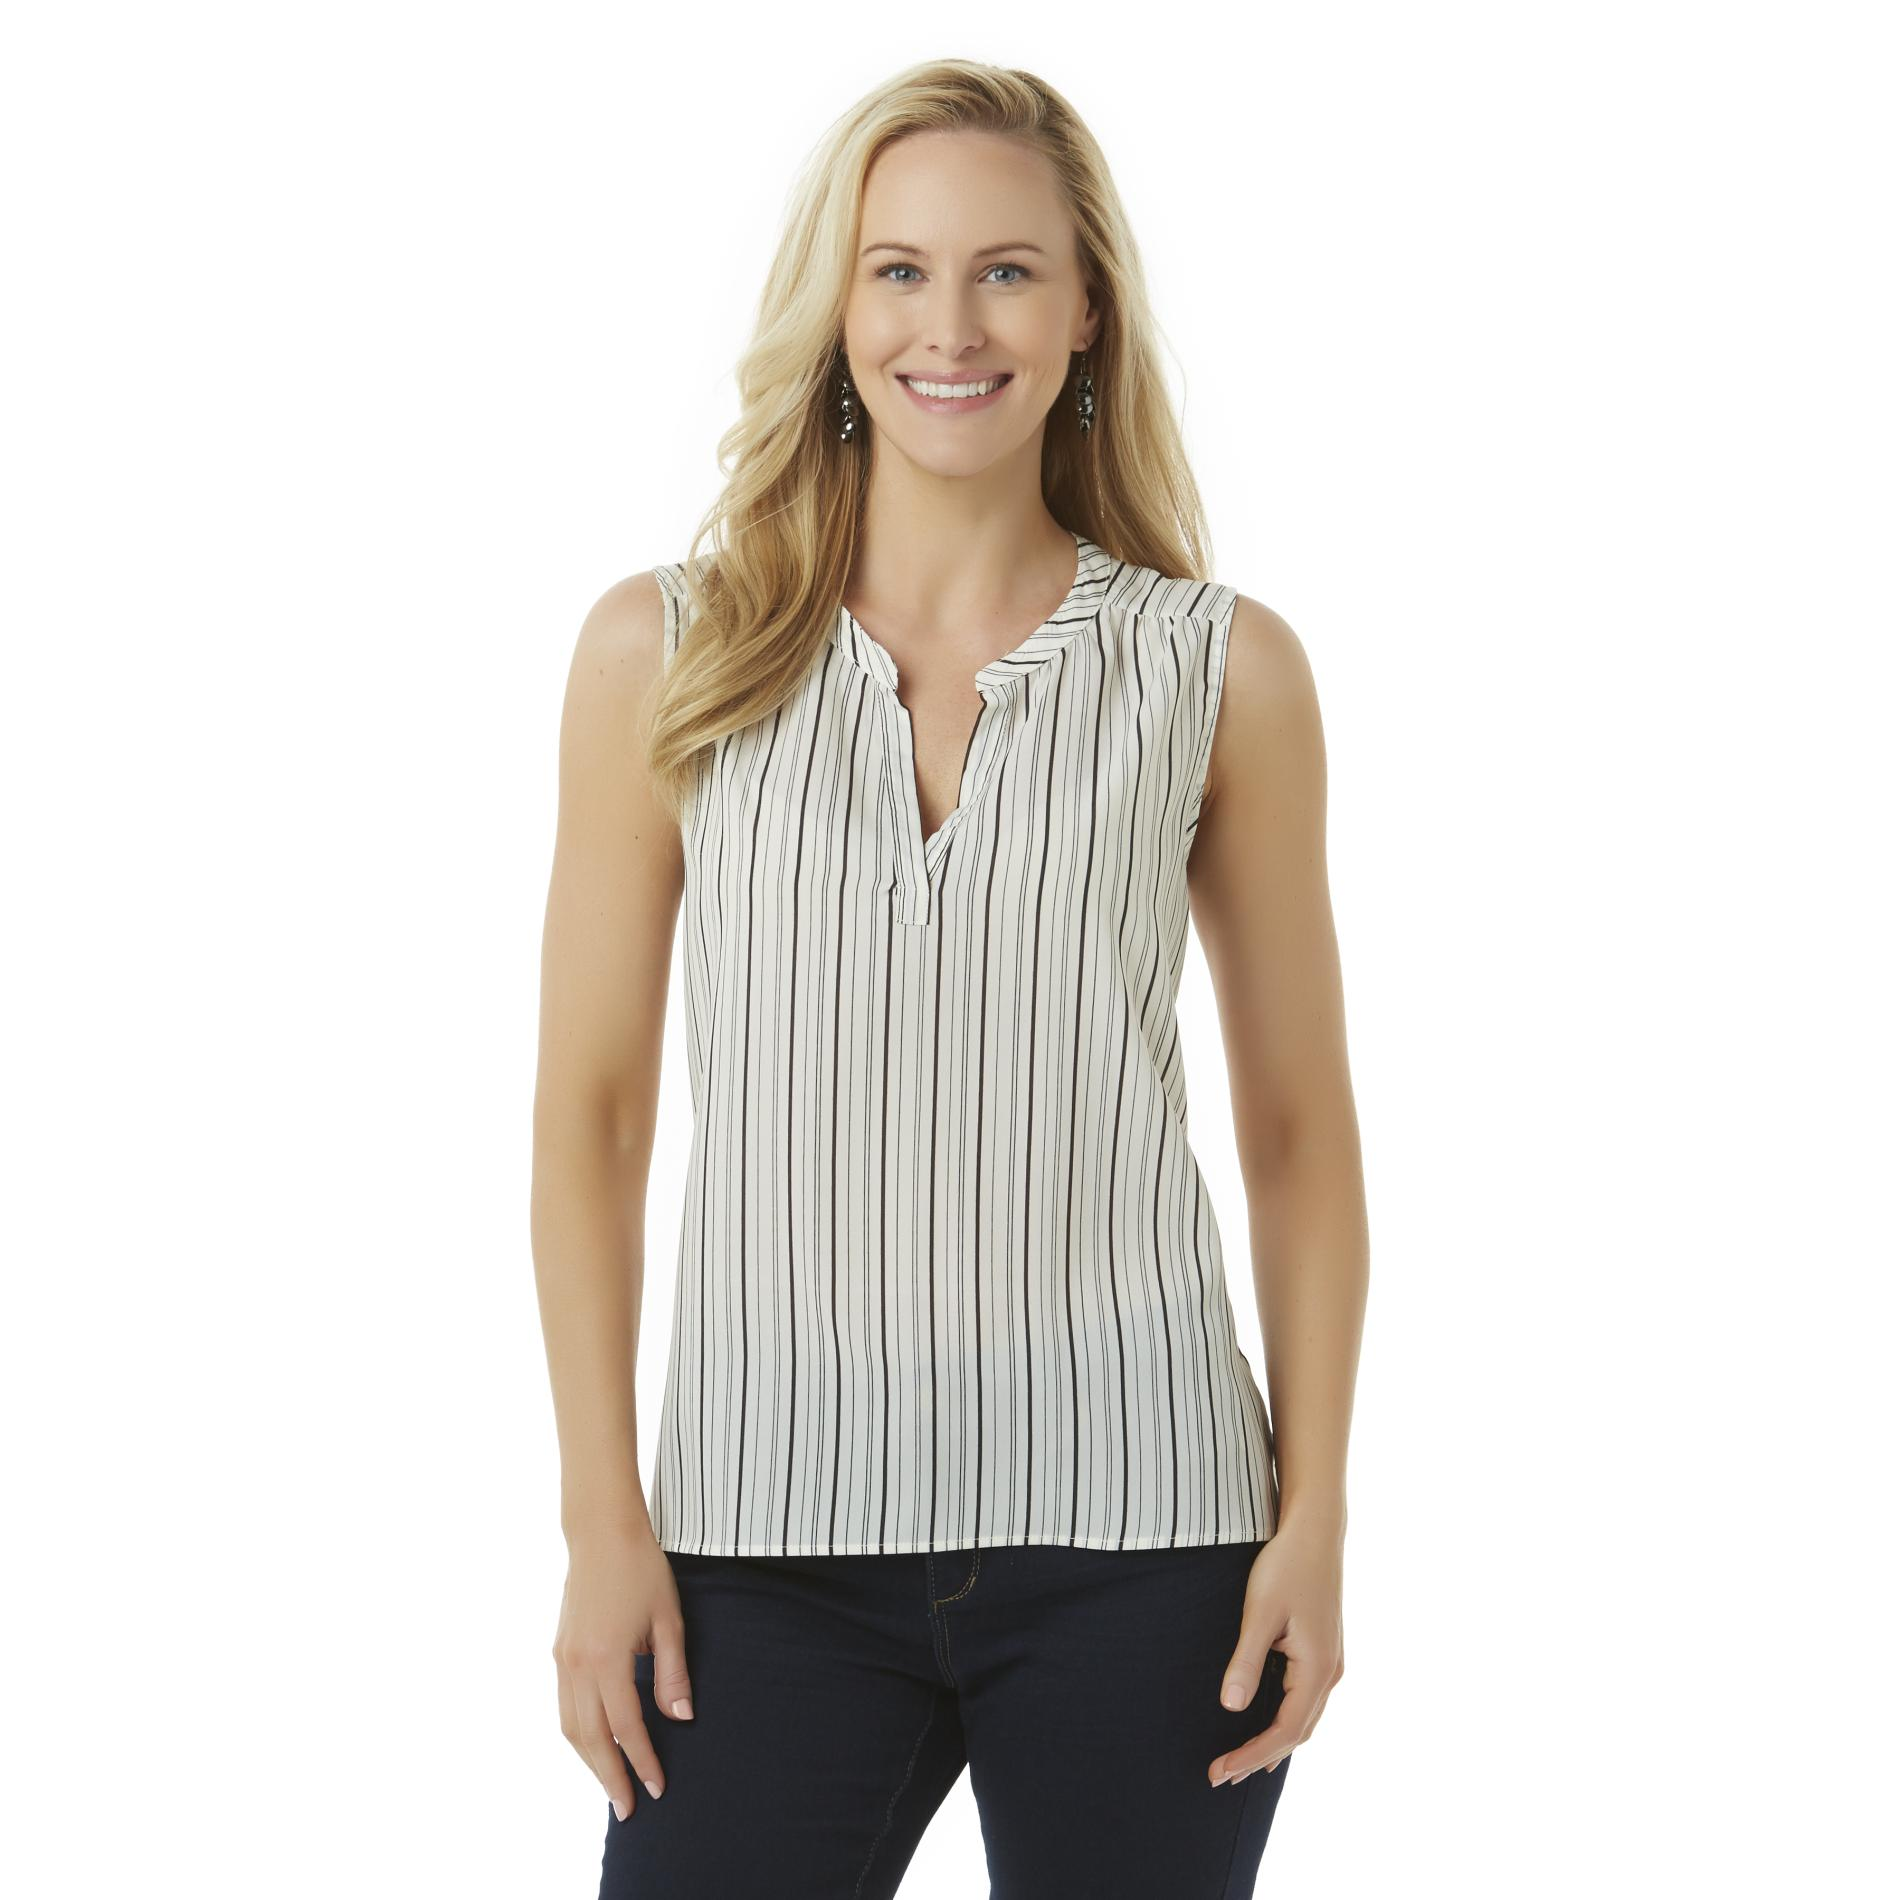 Simply Styled Women's Sleeveless Blouse - Striped